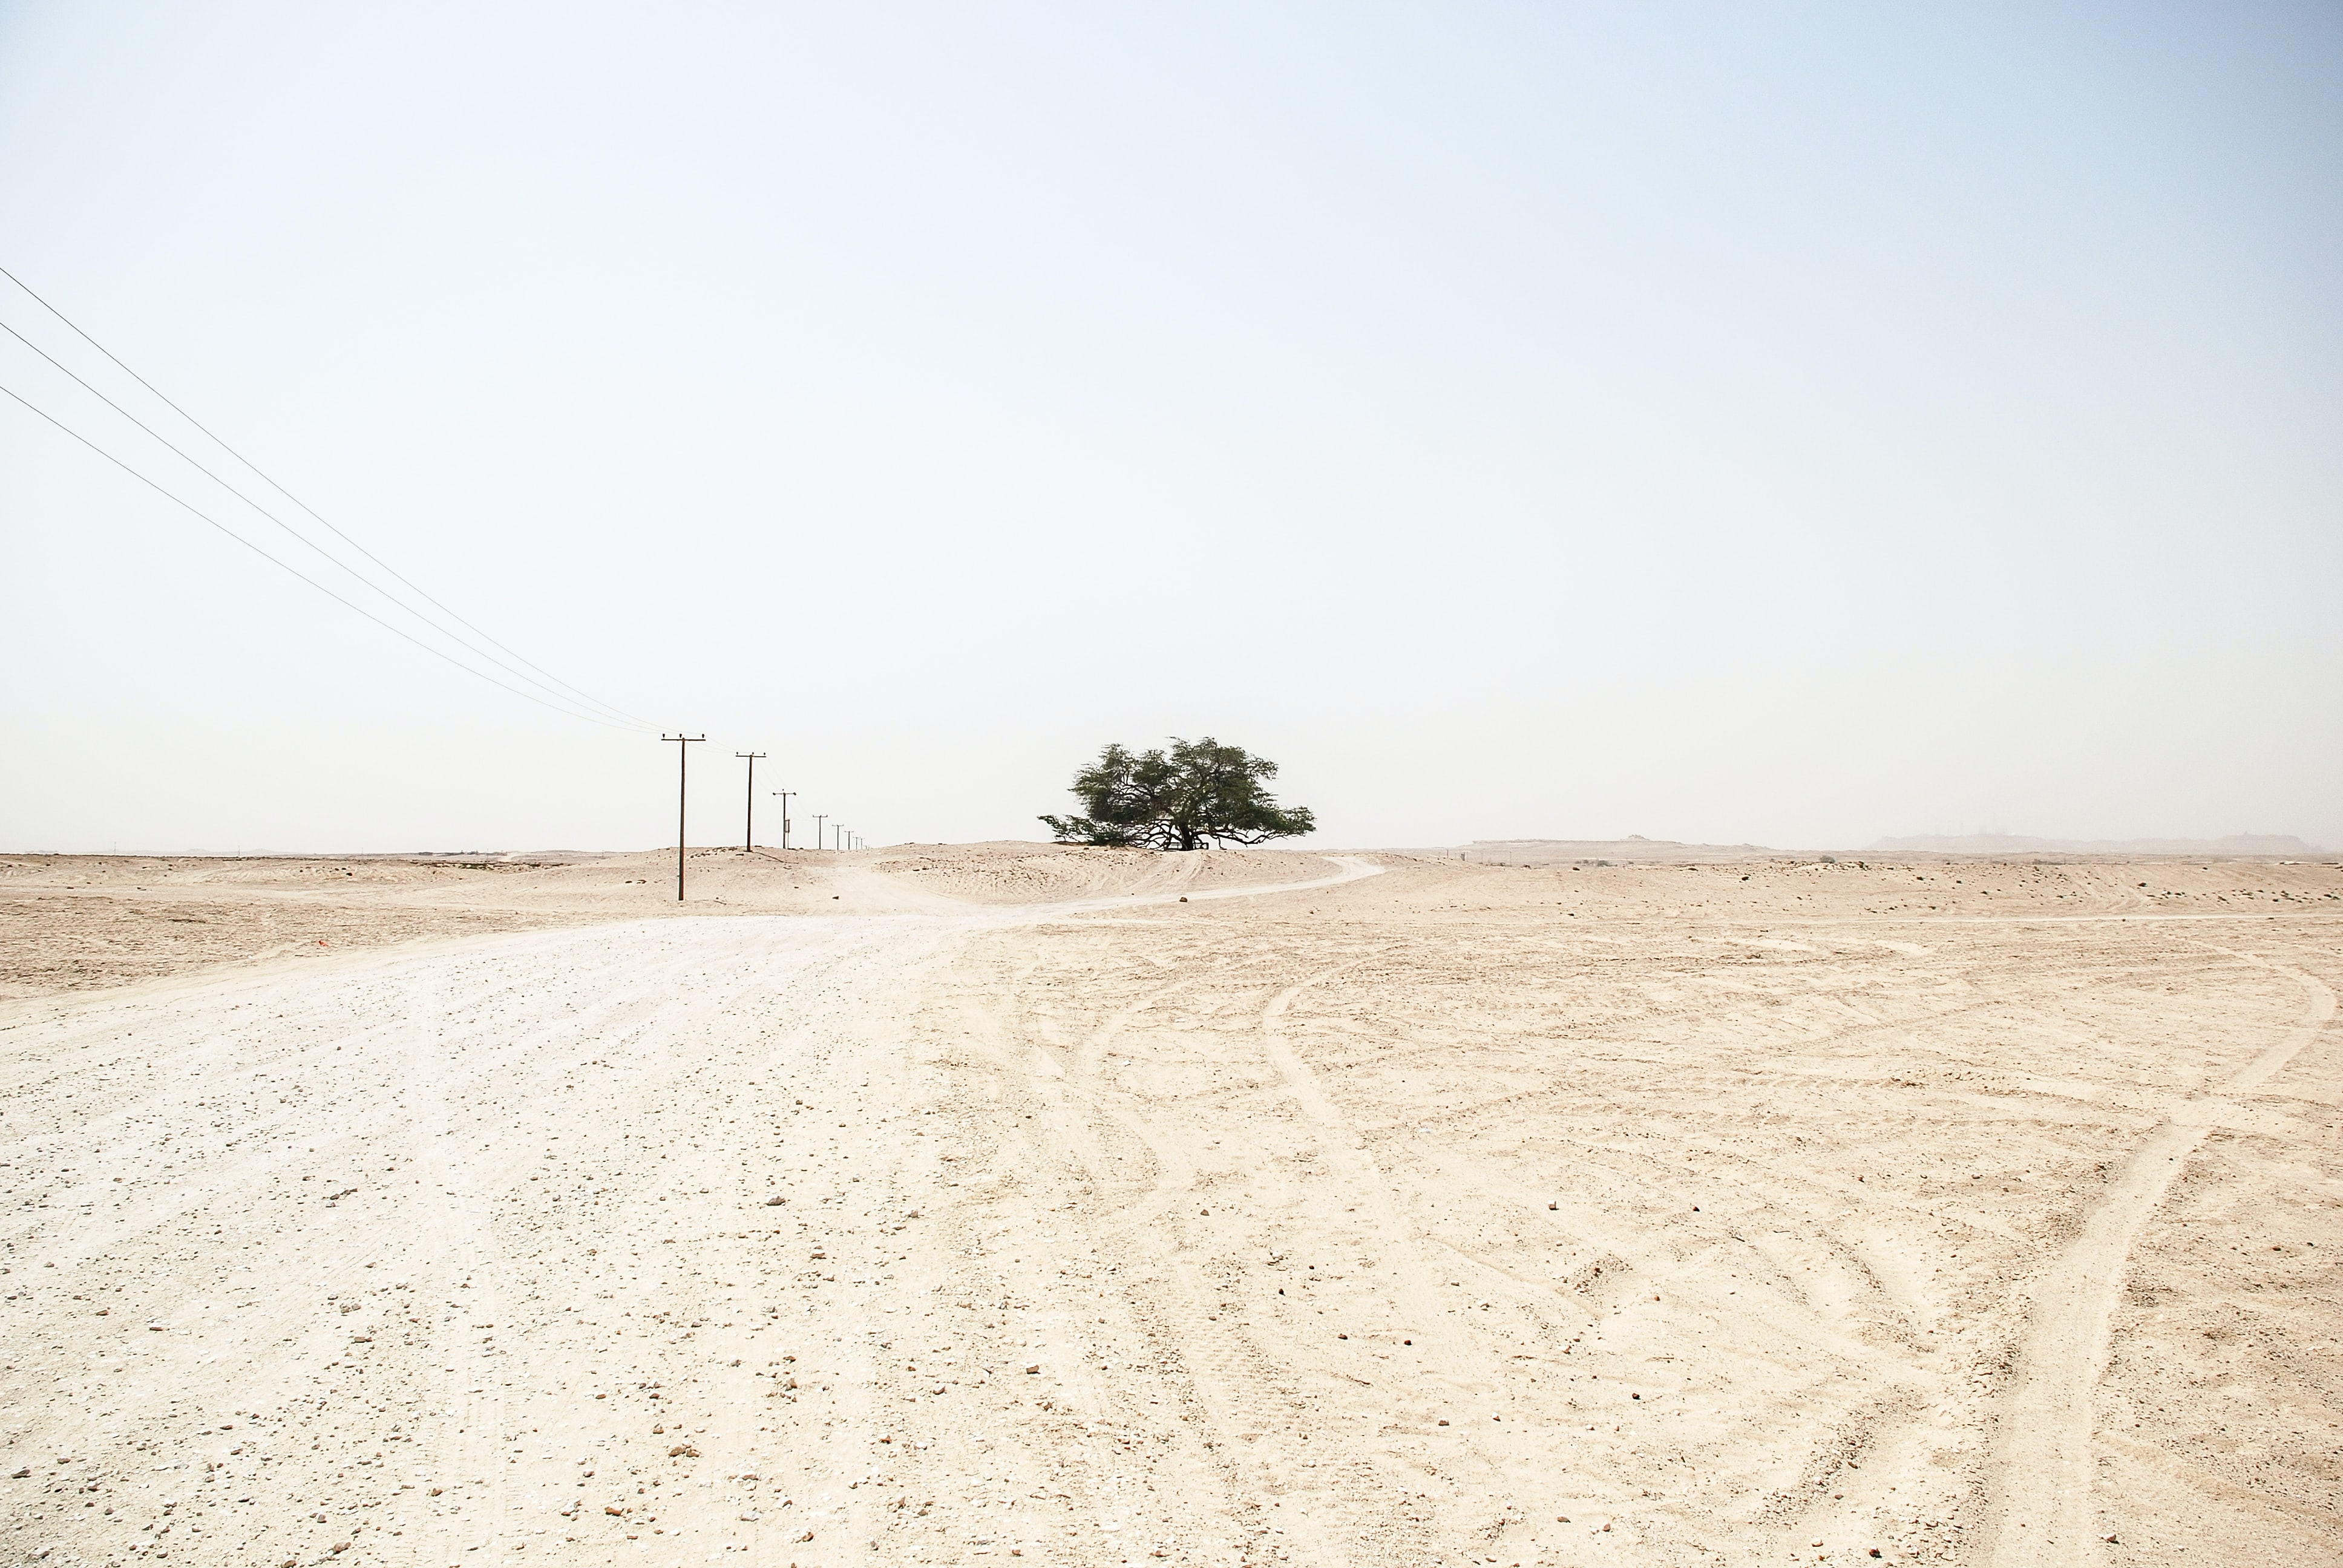 Single tree and powerlines in a desolate desert landscape